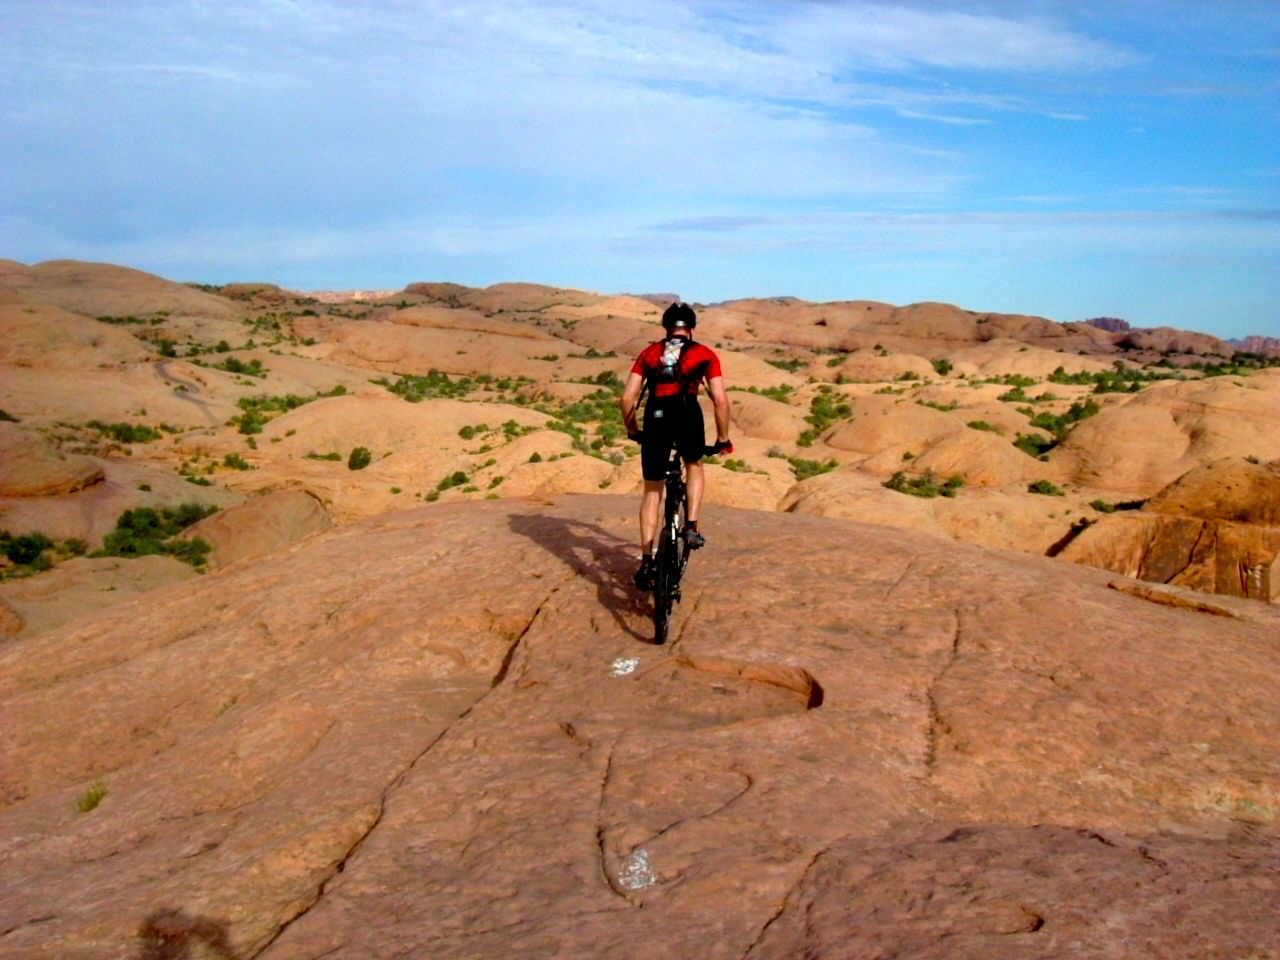 My husband riding Slick Rock into the abyss.